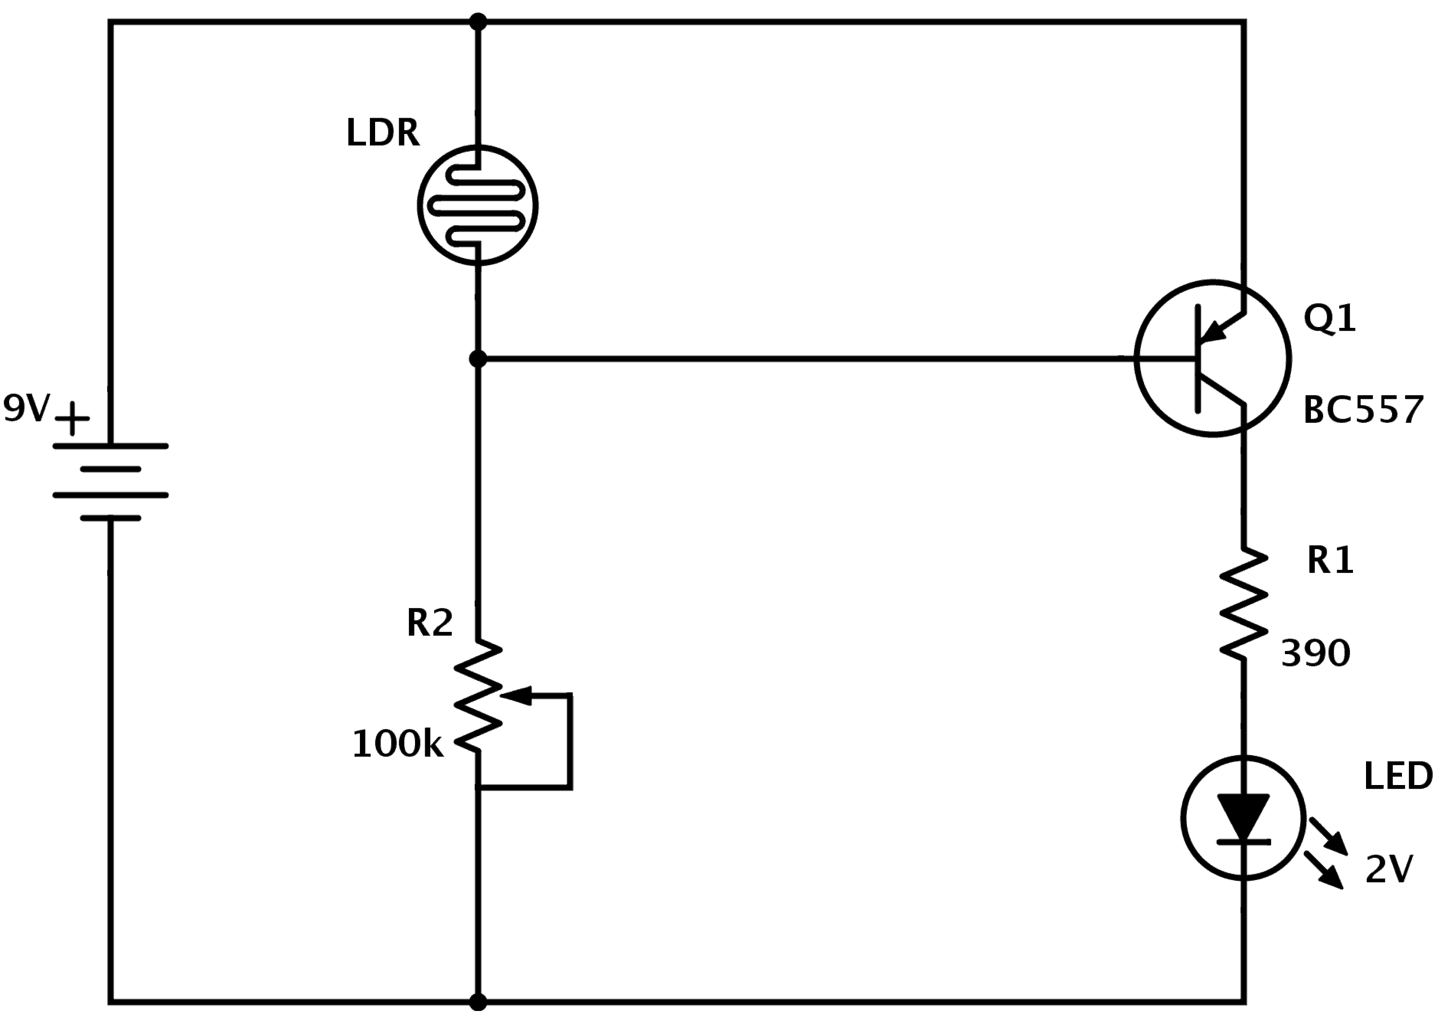 Ldr Circuit Diagram Build Electronic Circuits 555 Timer Potentiometer With Pnp Transistor Dark Detector